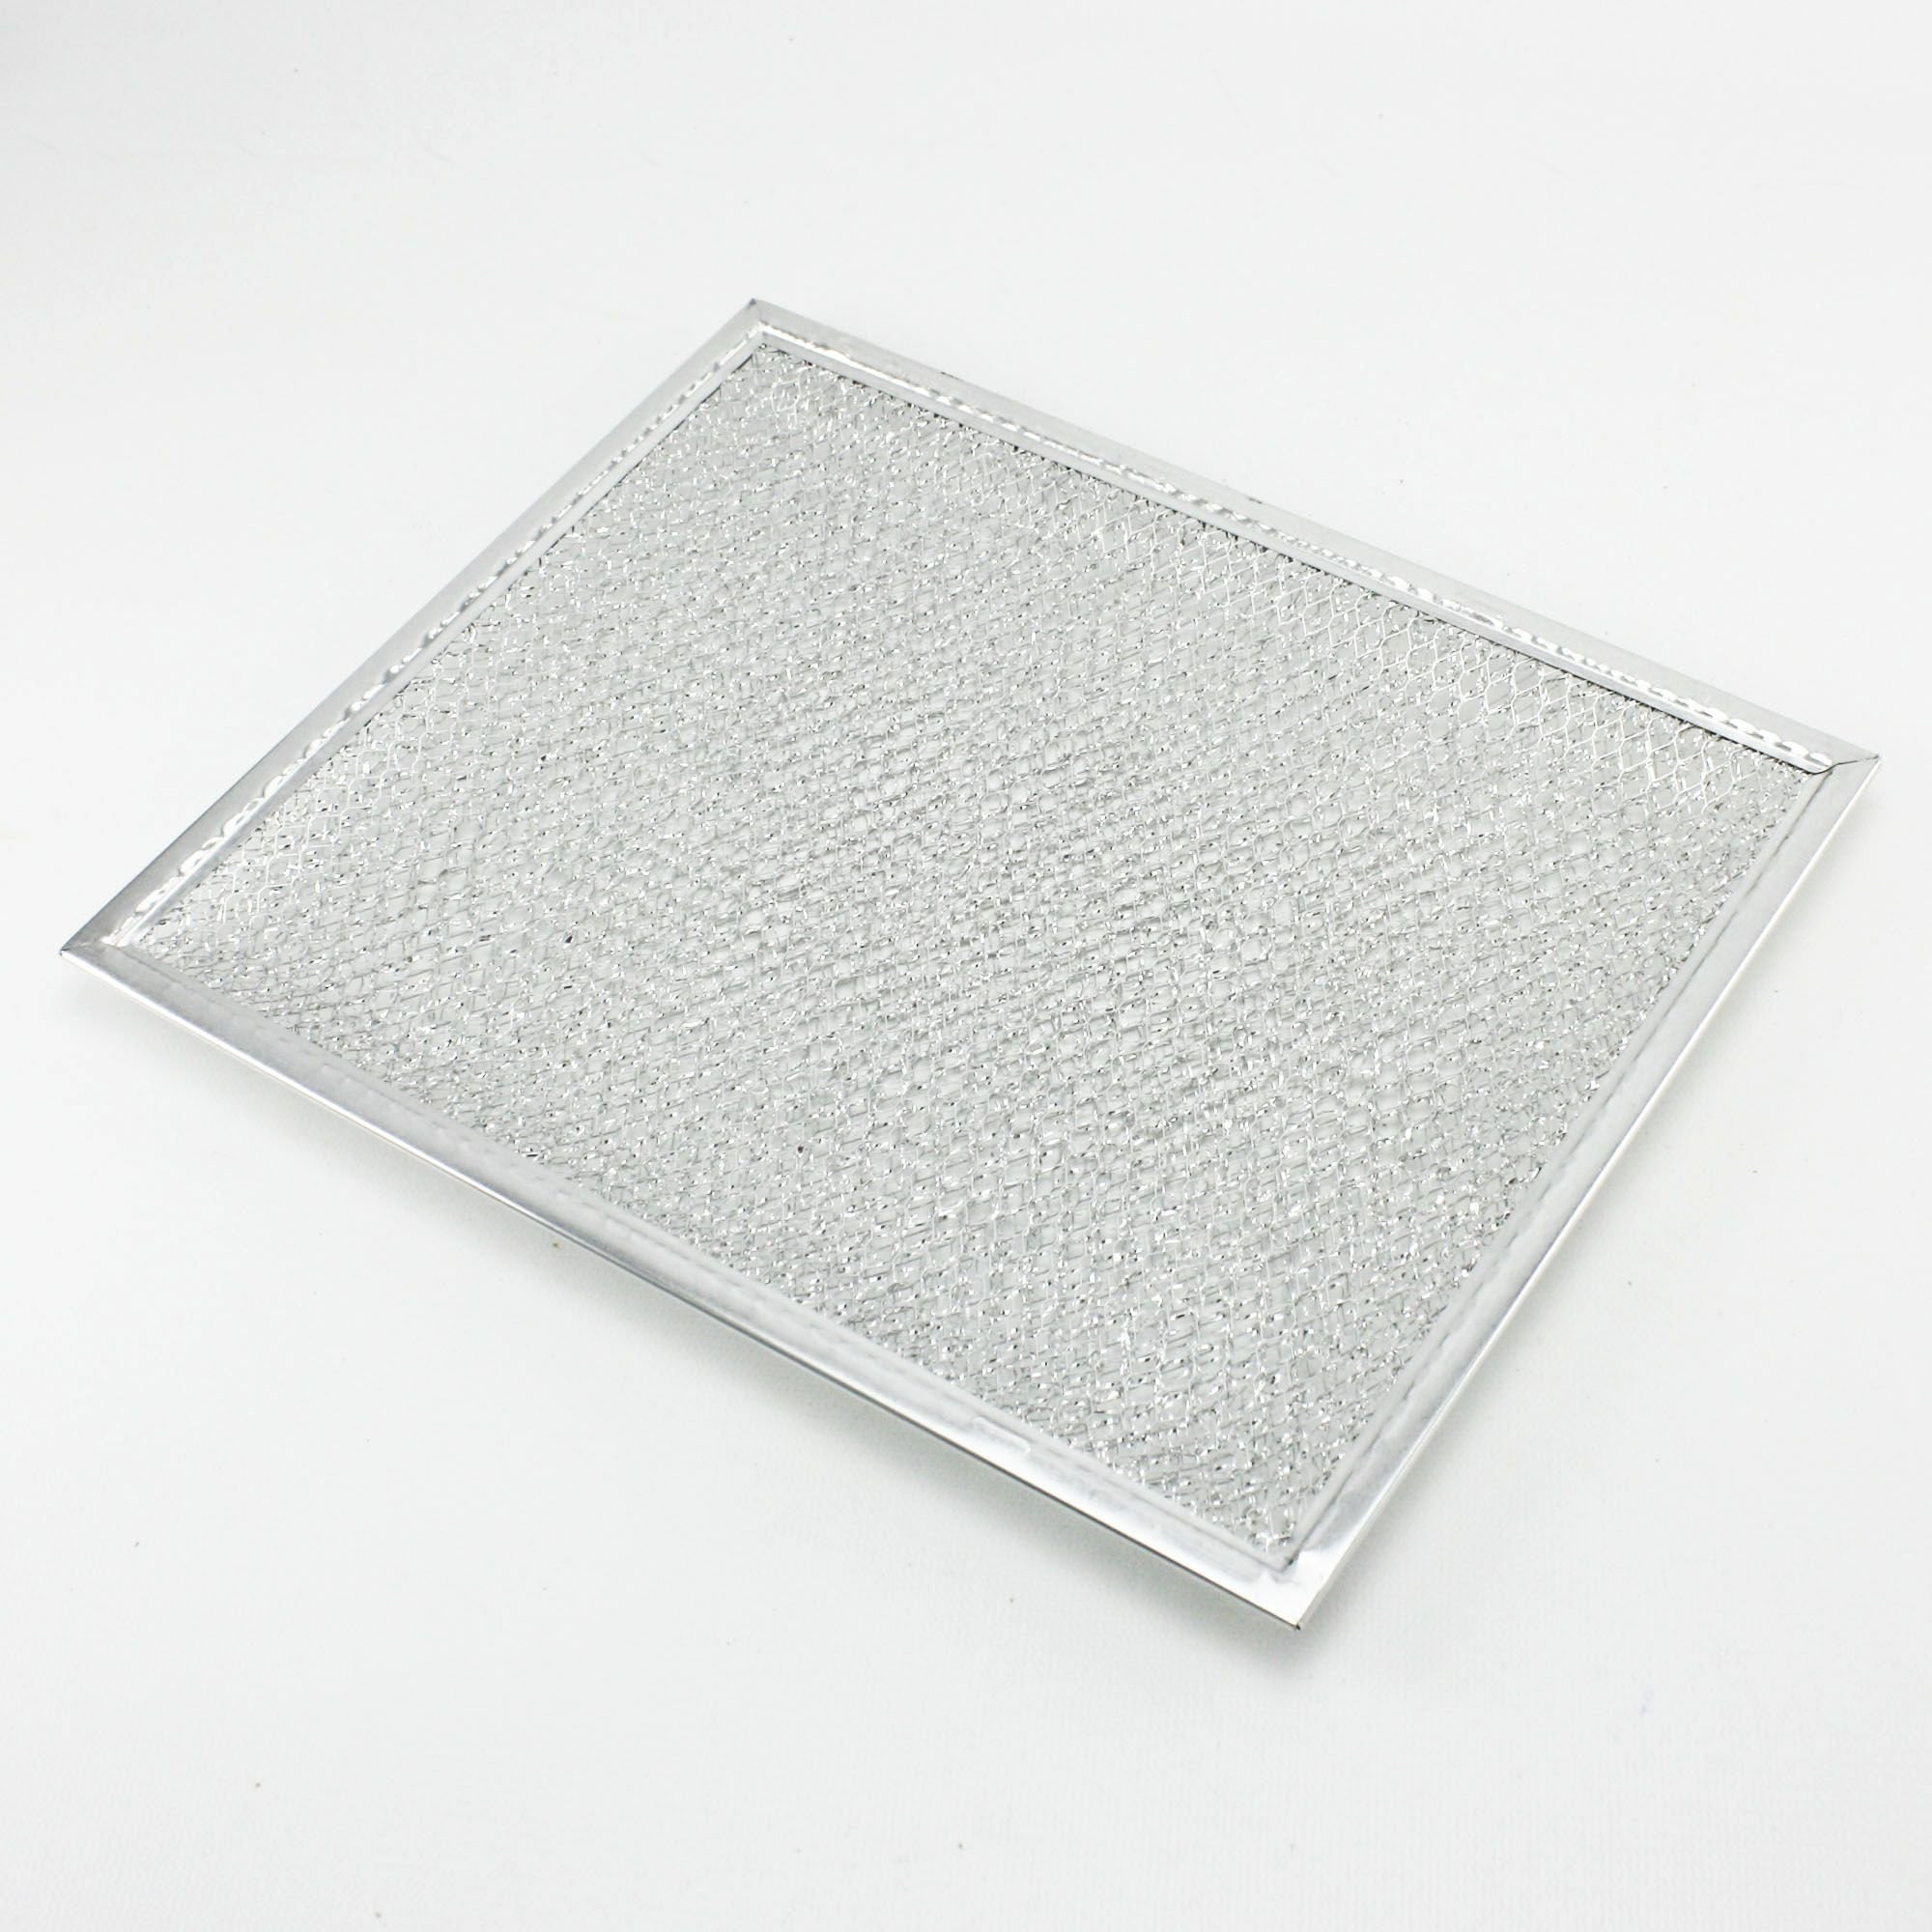 Replacement Aluminum Hood Vent Filter Compatible with Broan, 97006931 Gemline RF200   Dimensions: 8